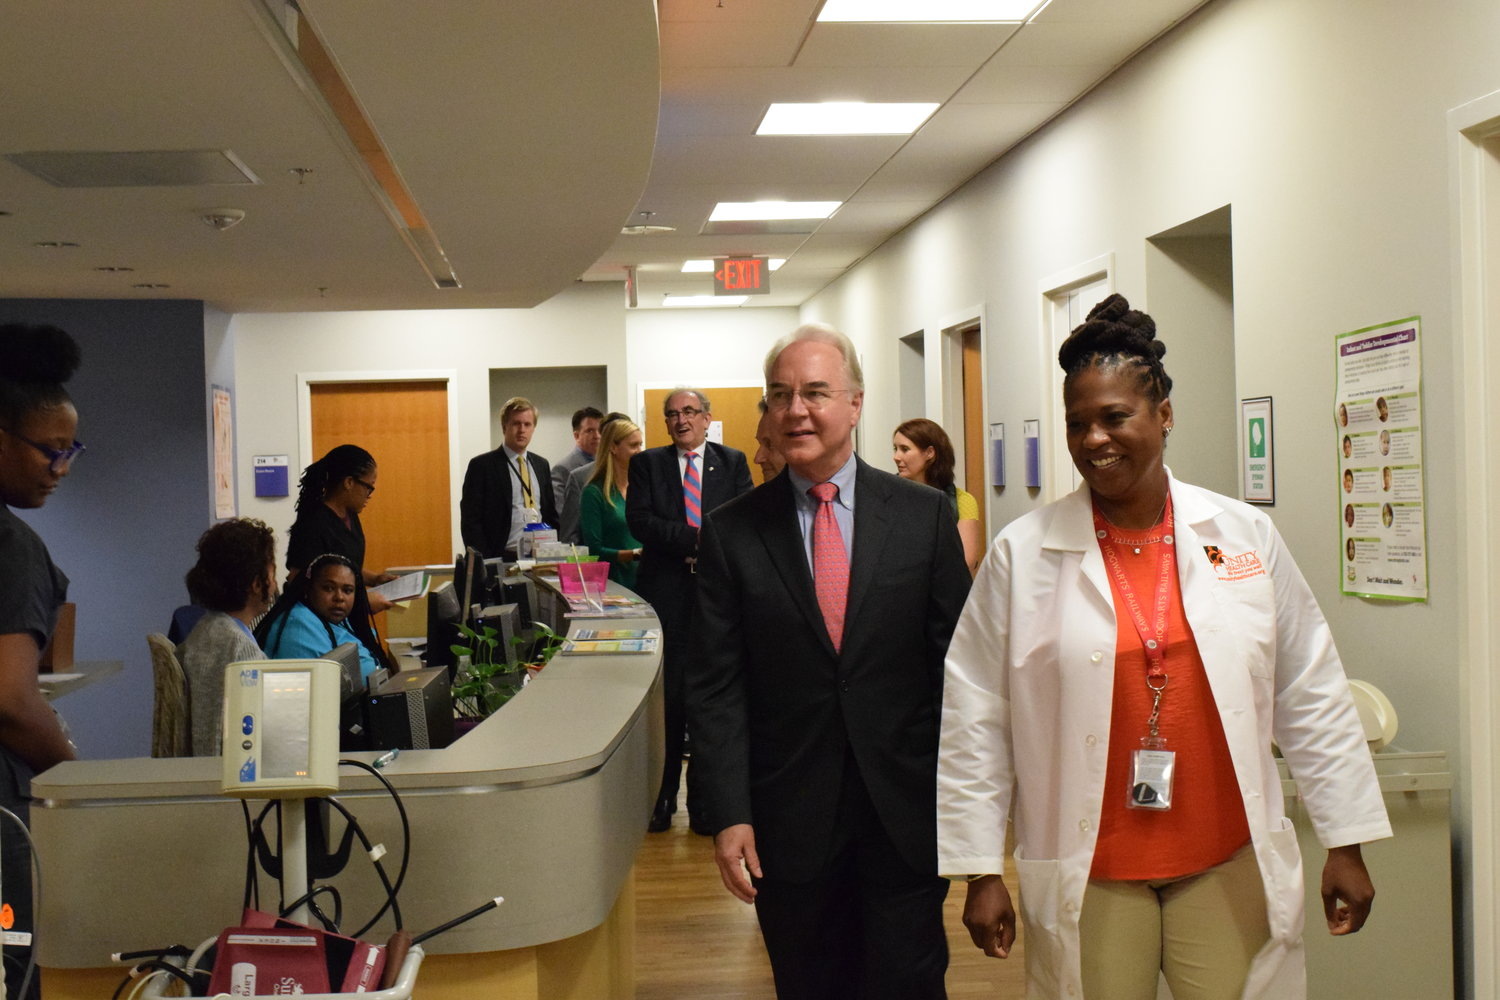 DHHS Secretary Price Visits Unity for National Health Center Week